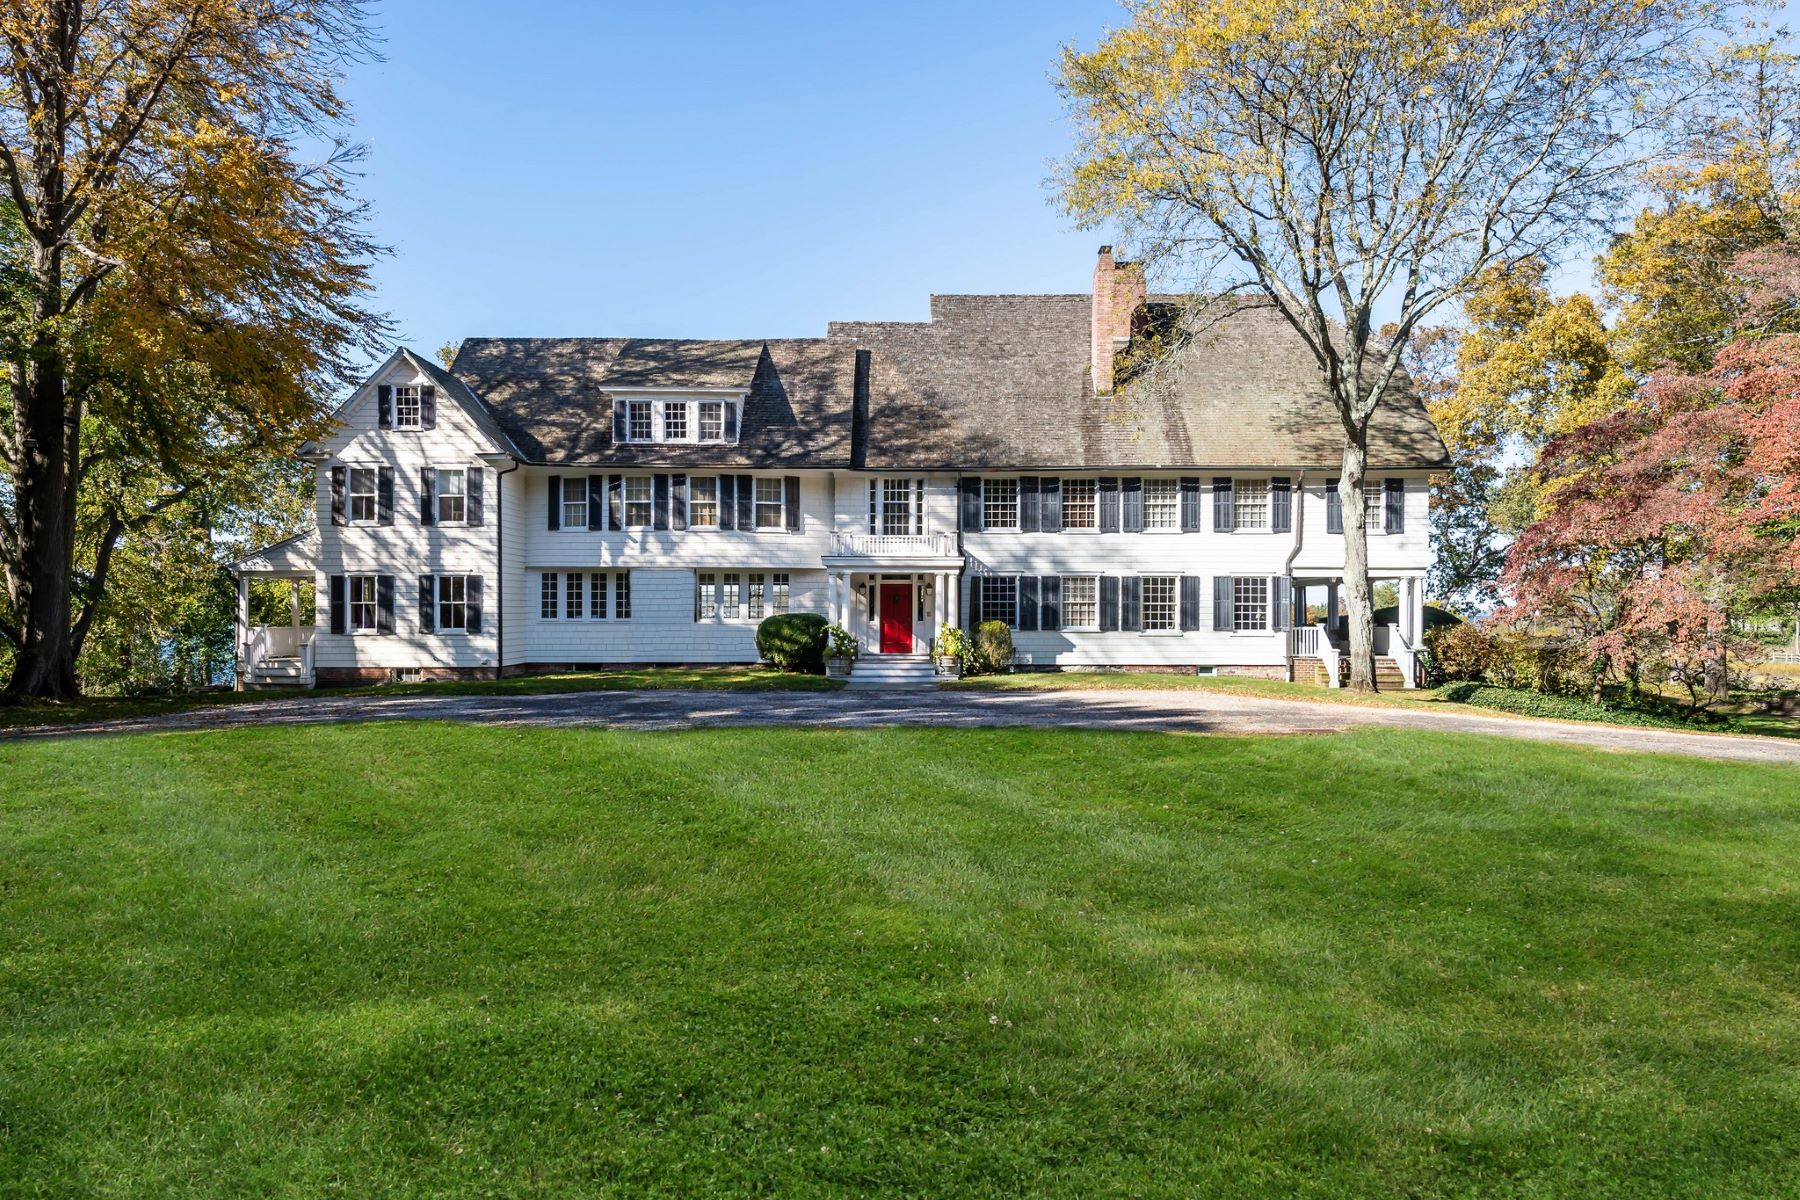 Single Family Homes for Sale at 83 Cove Neck Road Cove Neck, New York 11771 United States